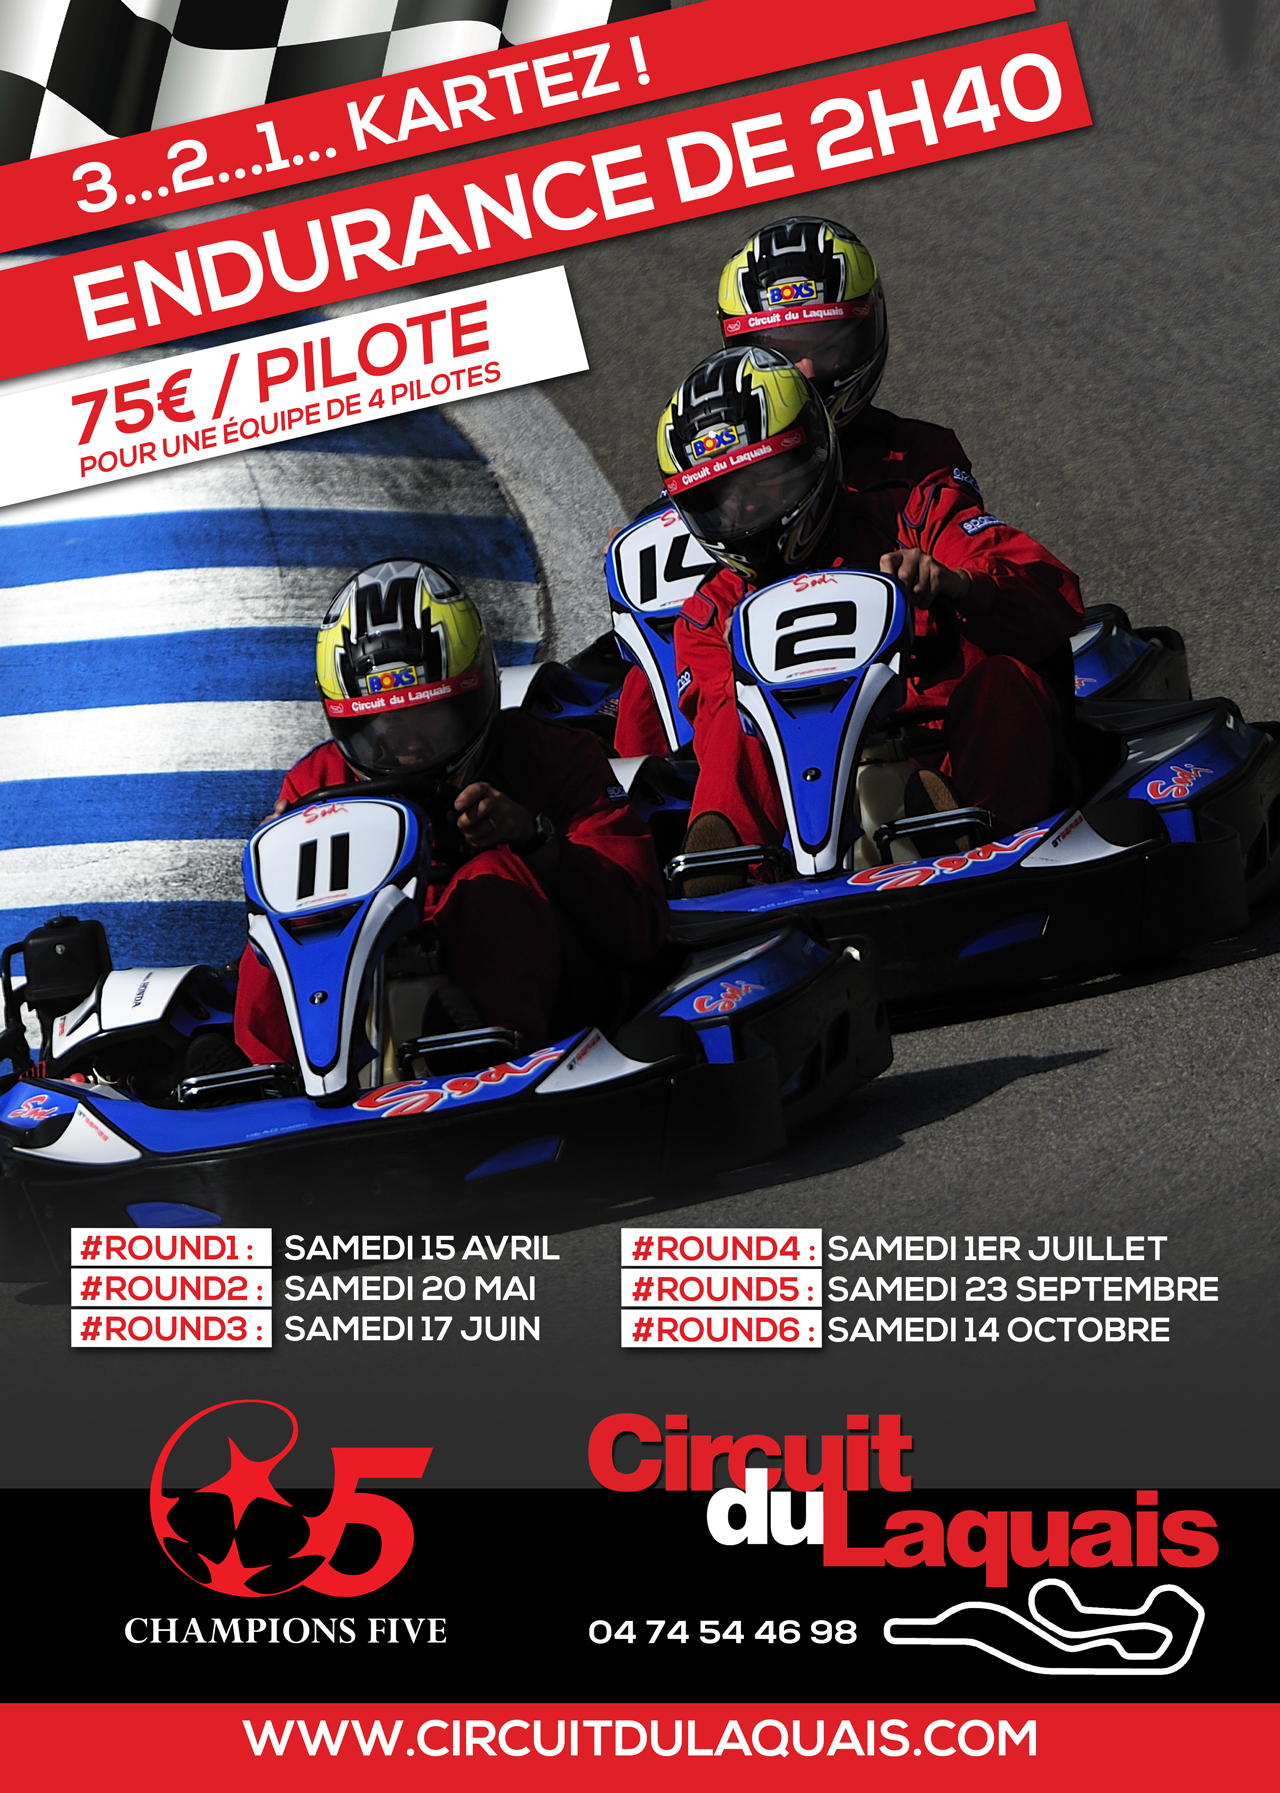 endurance karting champions 5 karting du laquais circuit du laquais. Black Bedroom Furniture Sets. Home Design Ideas